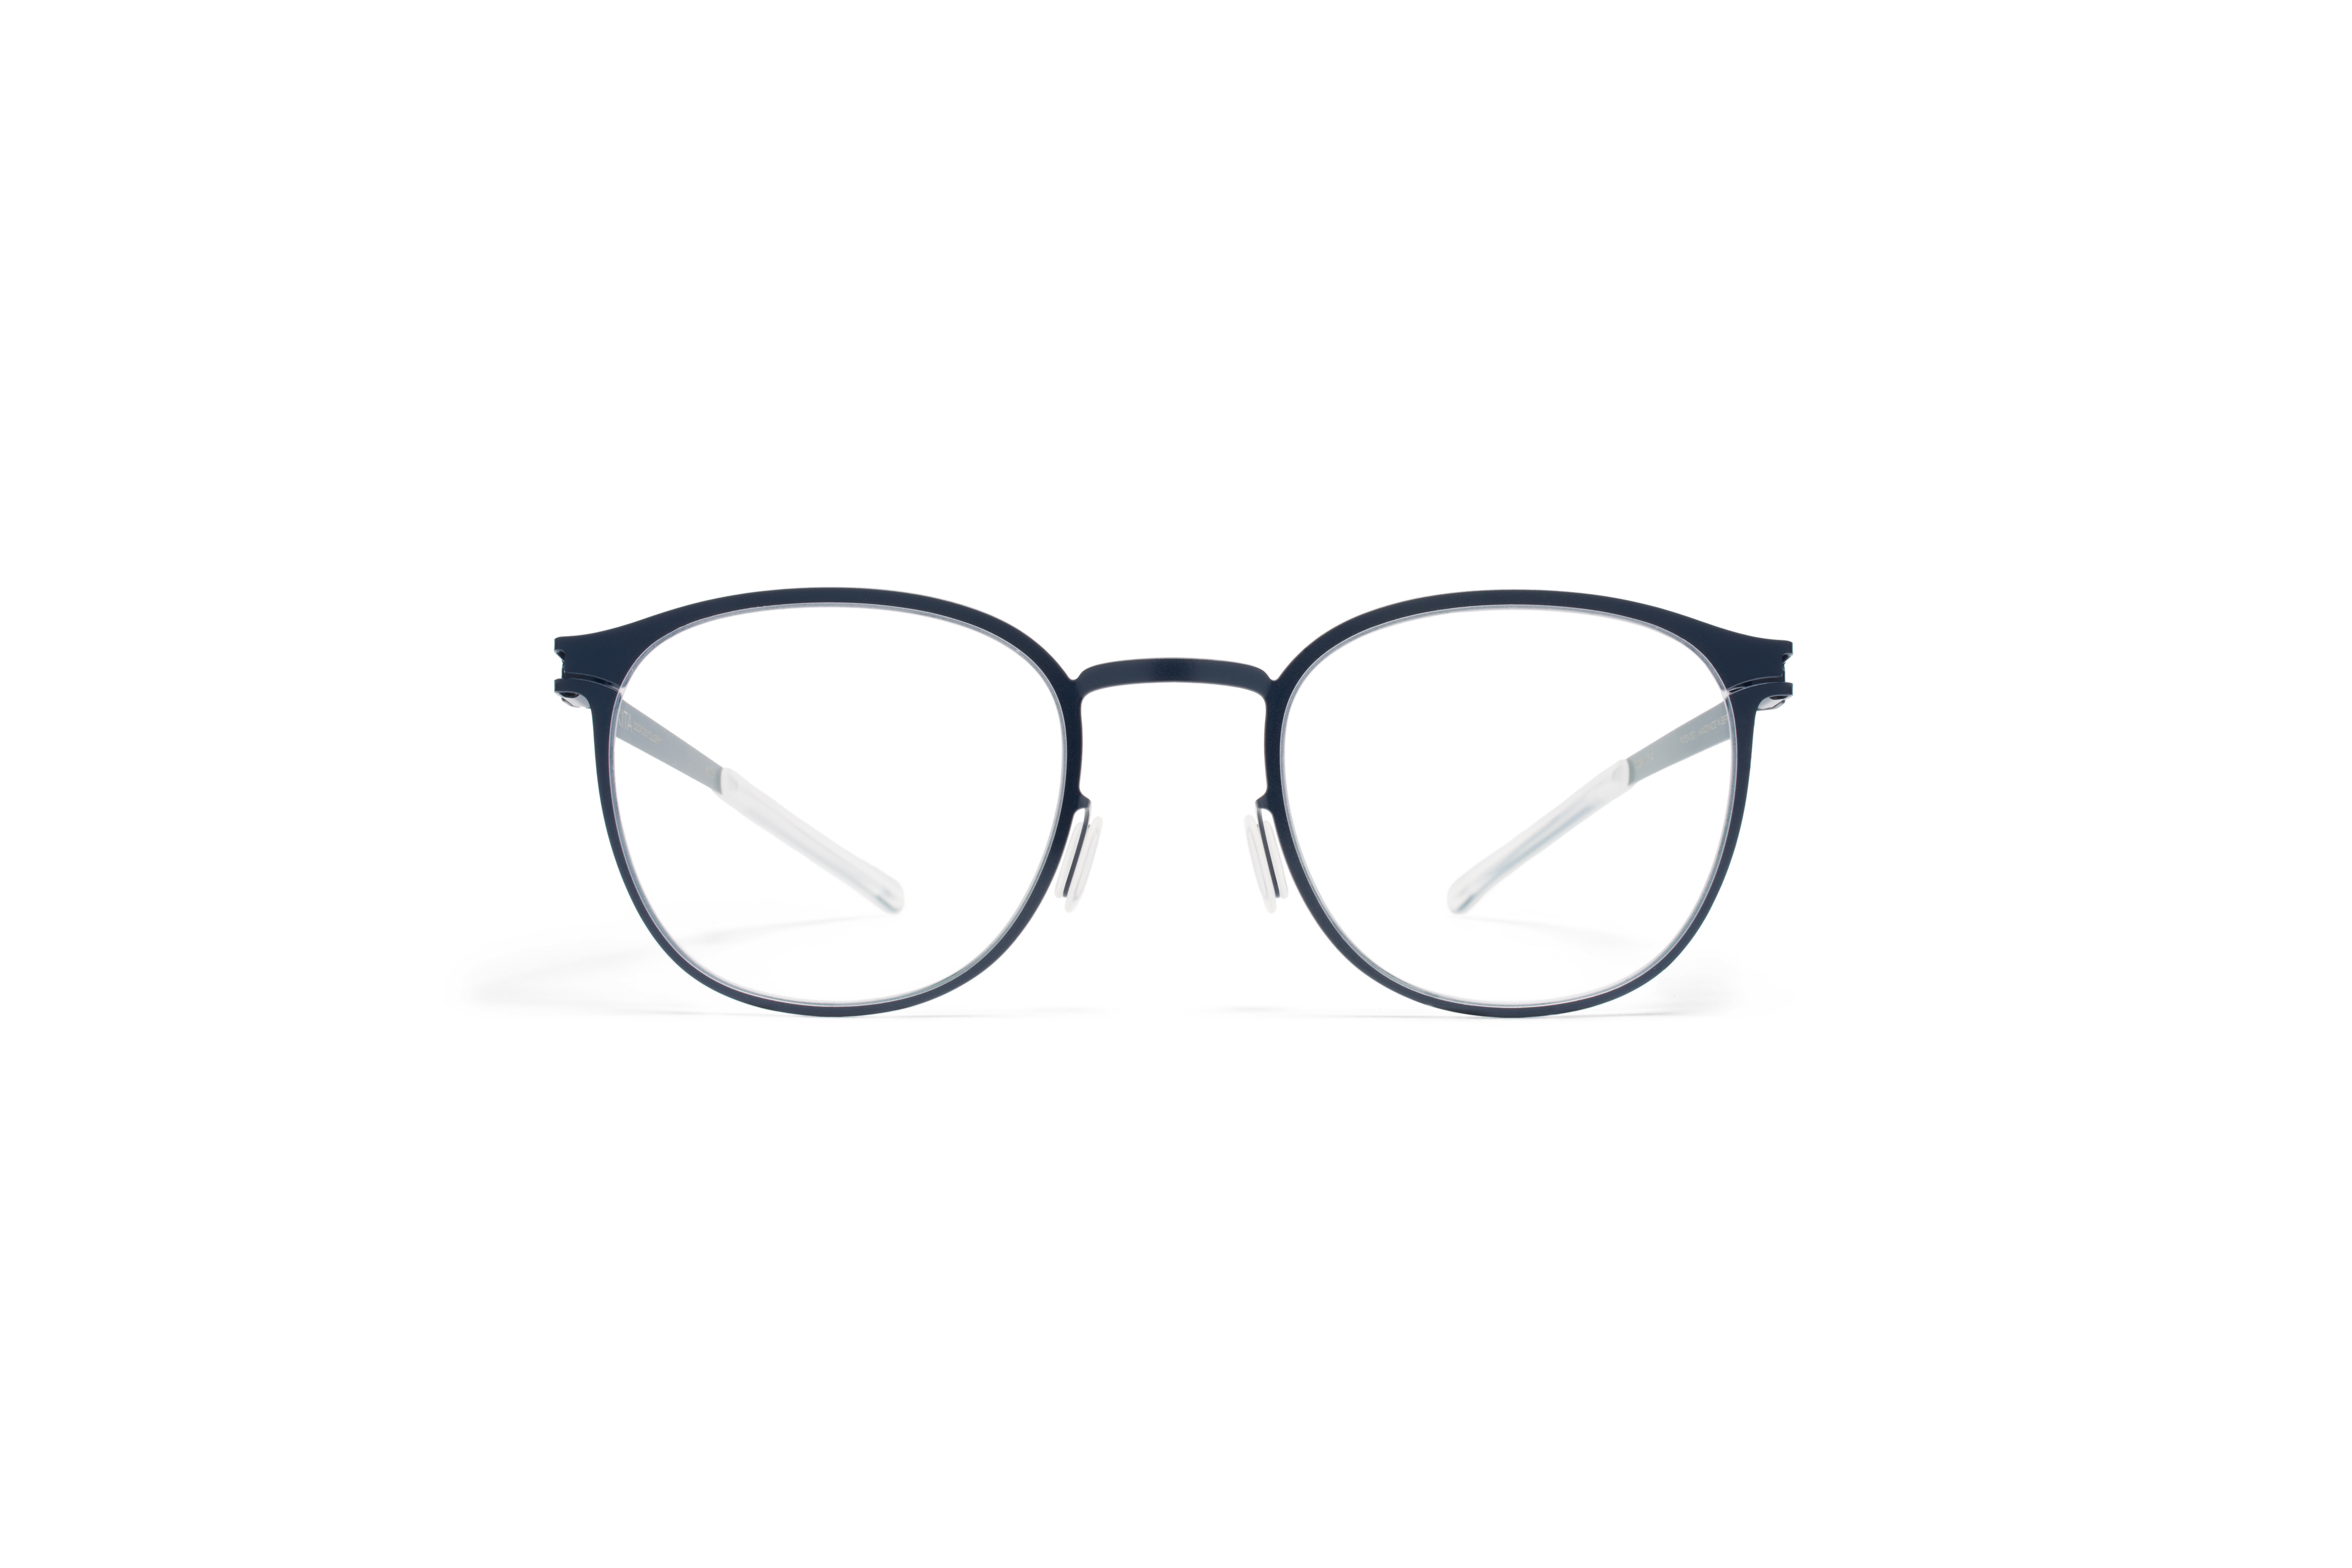 MYKITA Decades Rx Ellery Nightsky Clear P562abe6b31bd5